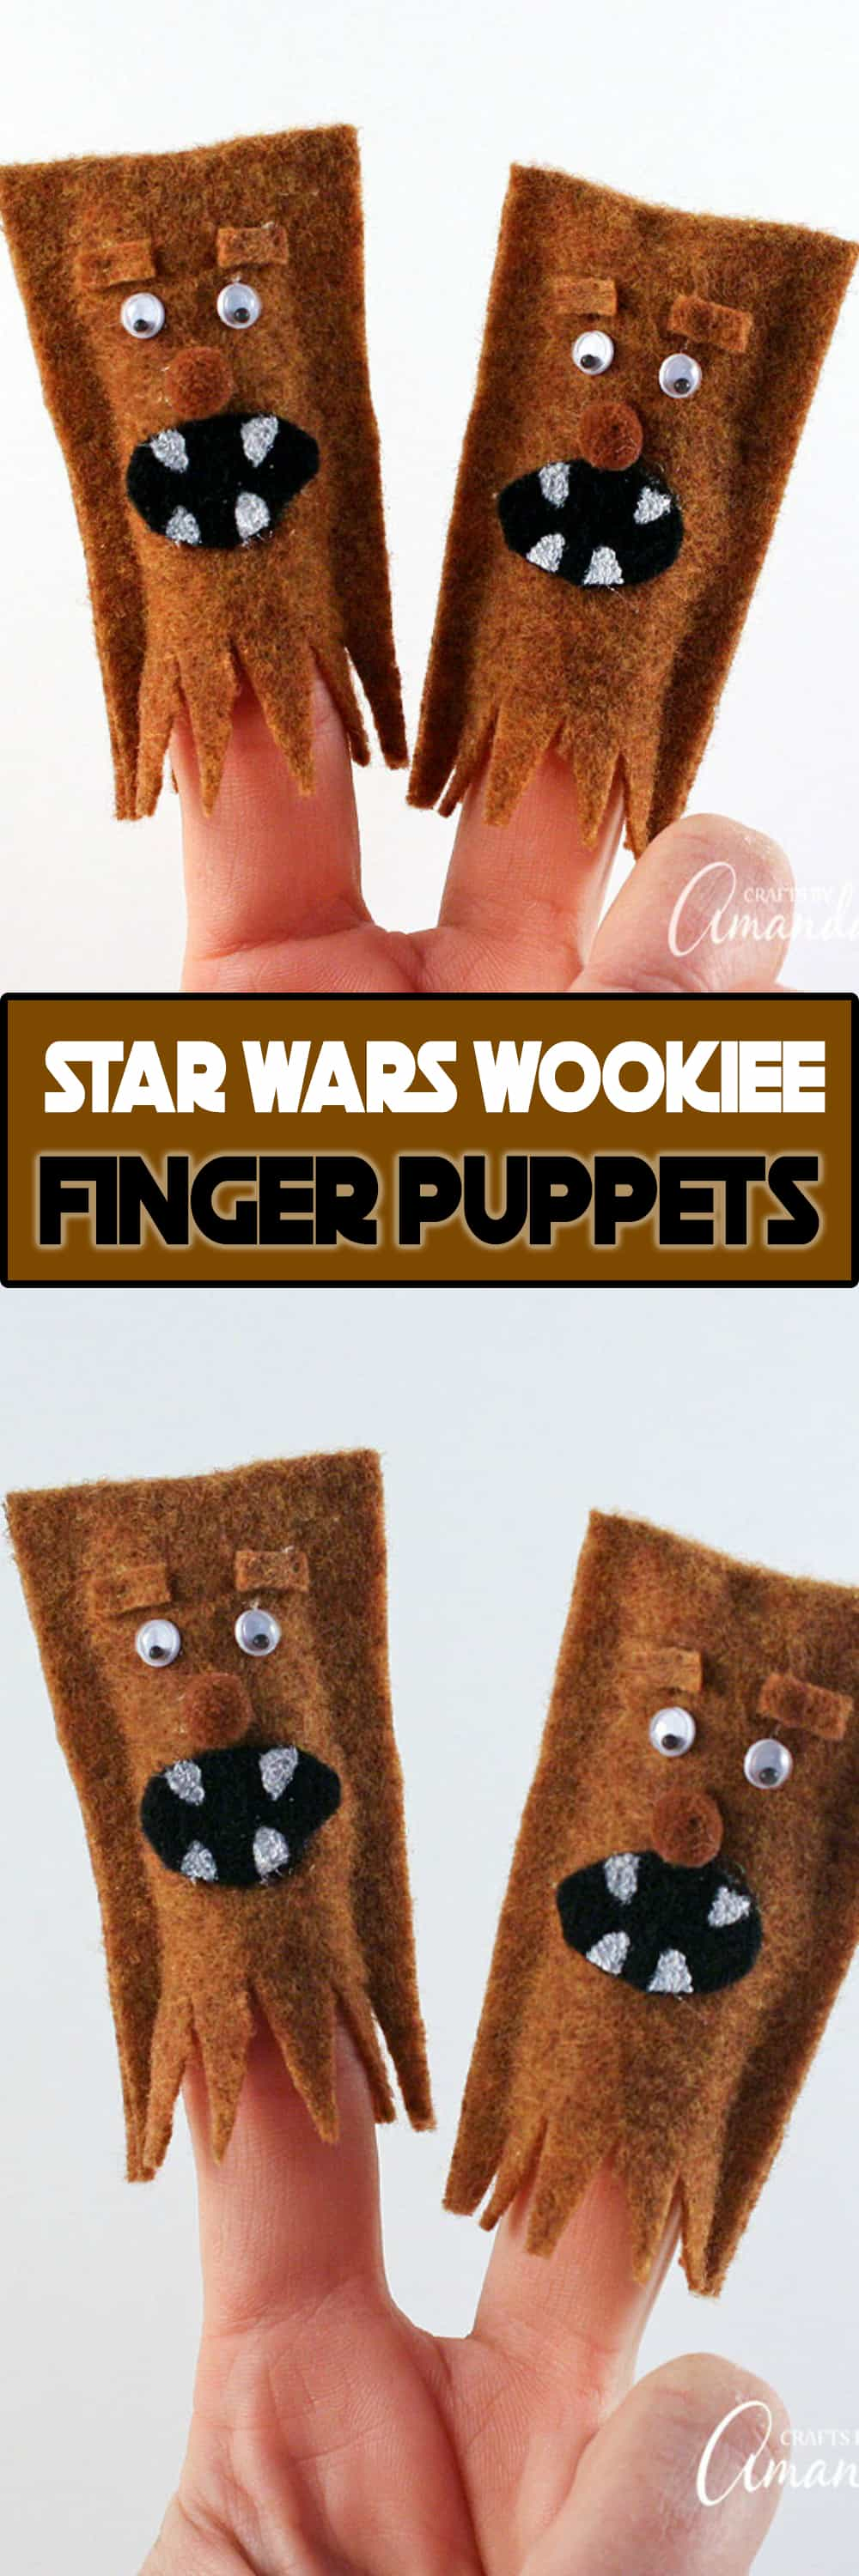 Wookiee Finger Puppets